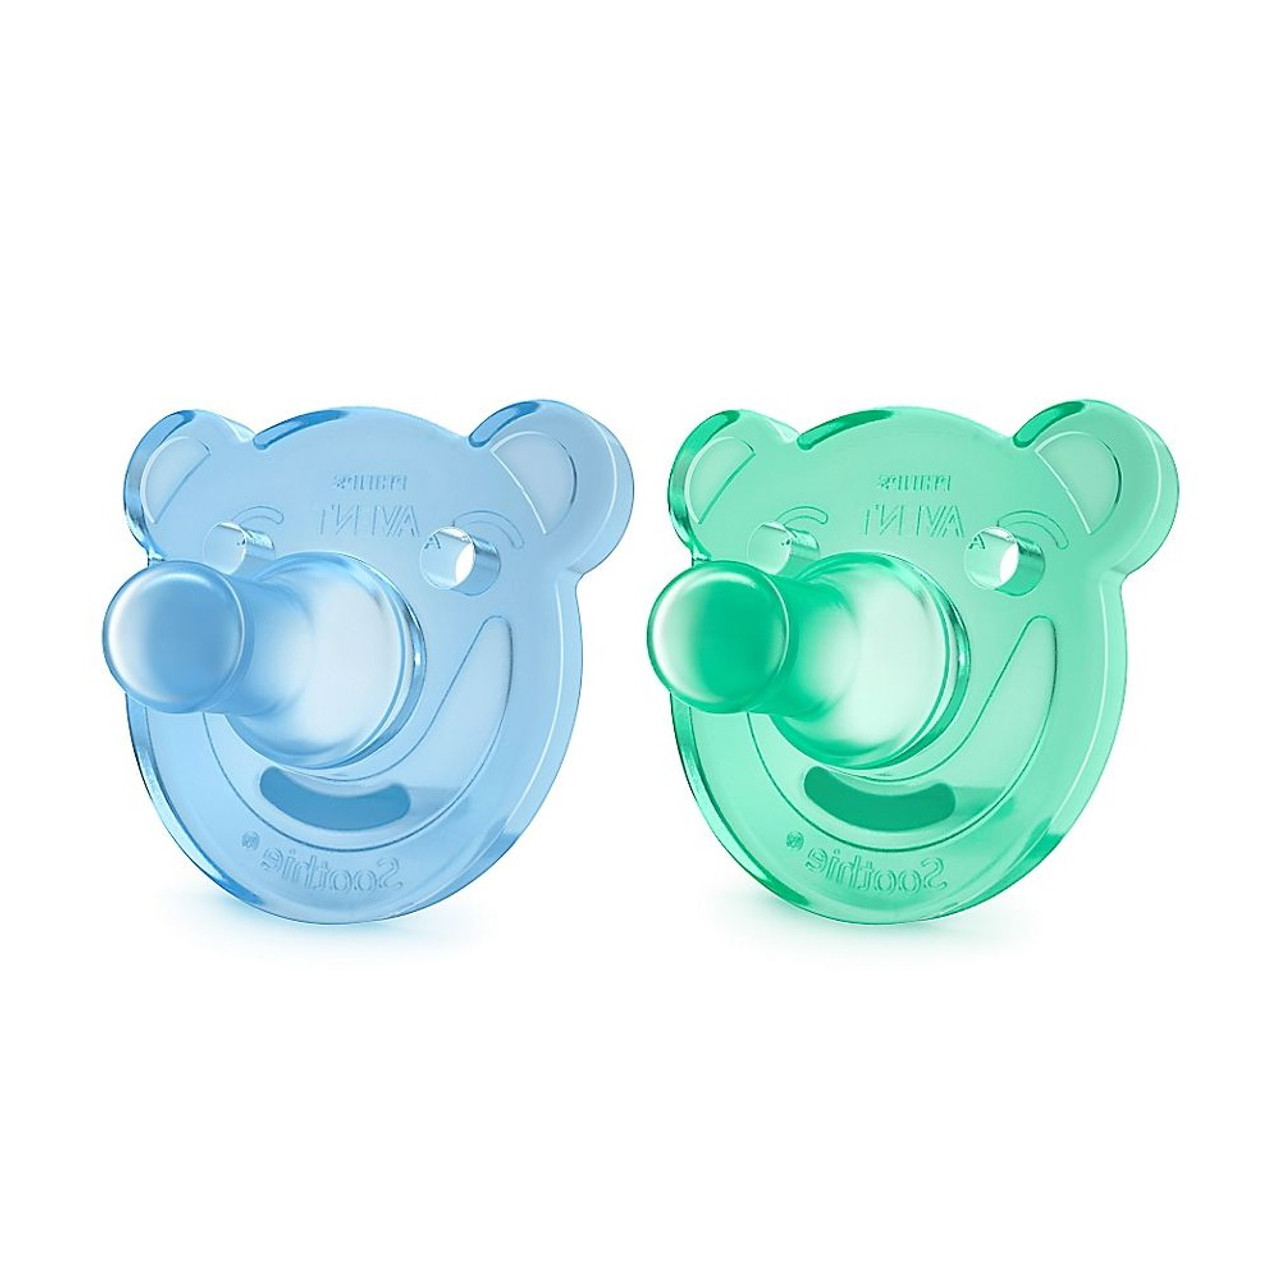 Avent Orthodontic Bear Soothie 3 months+ Blue Green 2 Pack